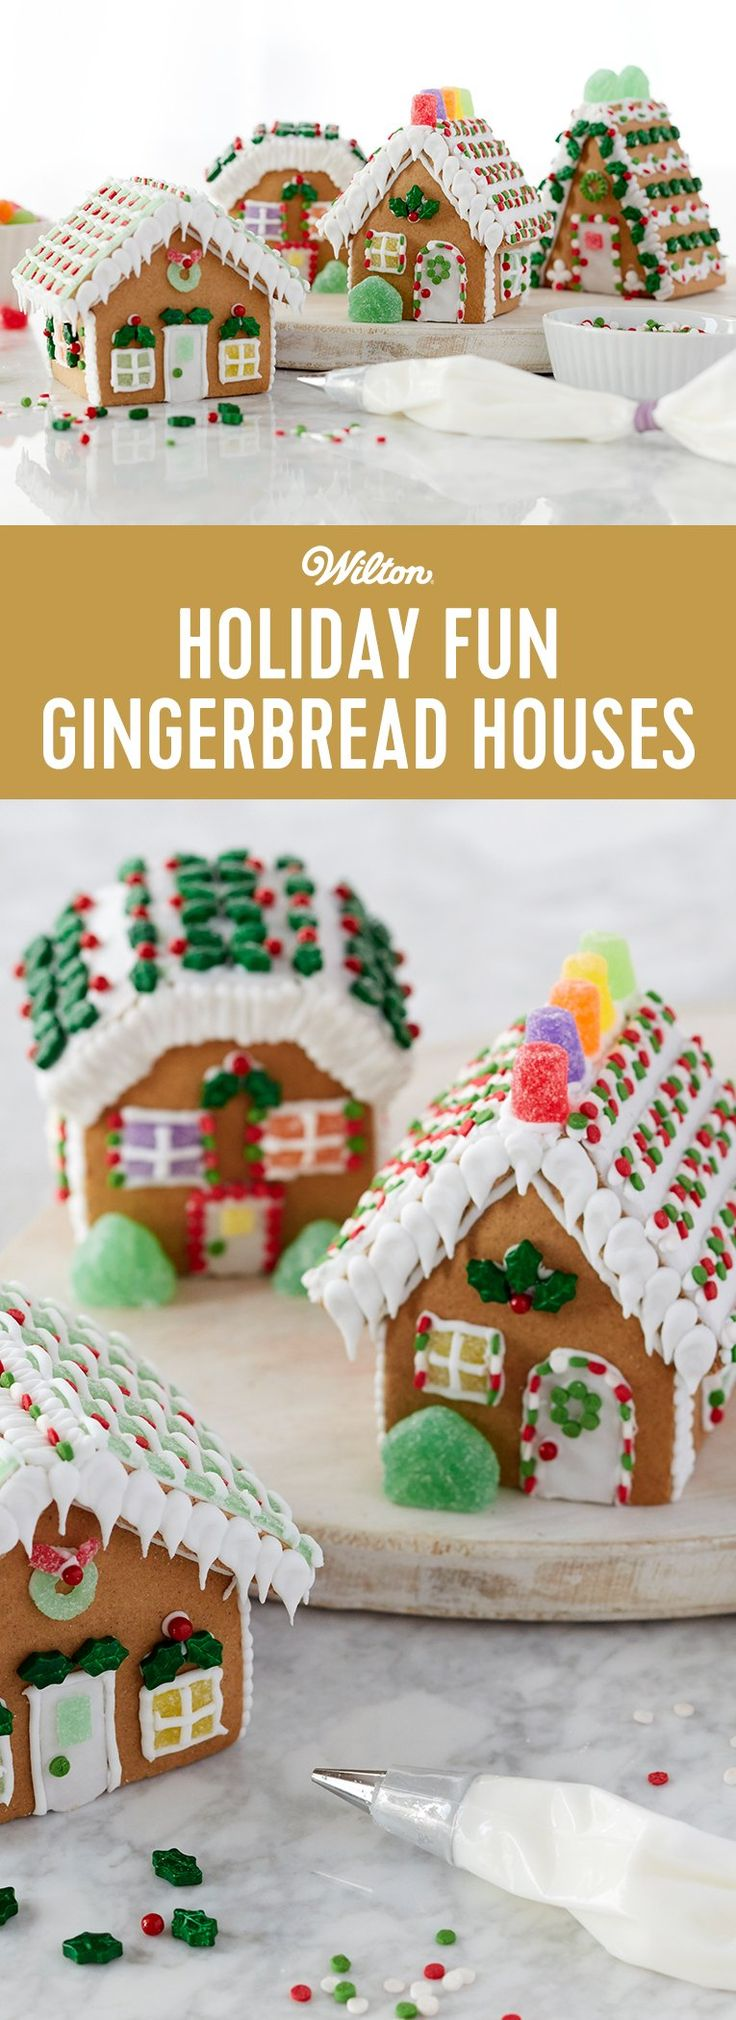 Holiday Fun Classic Mini Gingerbread Cottages - Have some fun these holidays as you decorate this gingerbread mini village. Kids and adults will like choosing a house to decorate as their own. It's easy with using festive candy, sprinkles and icing!